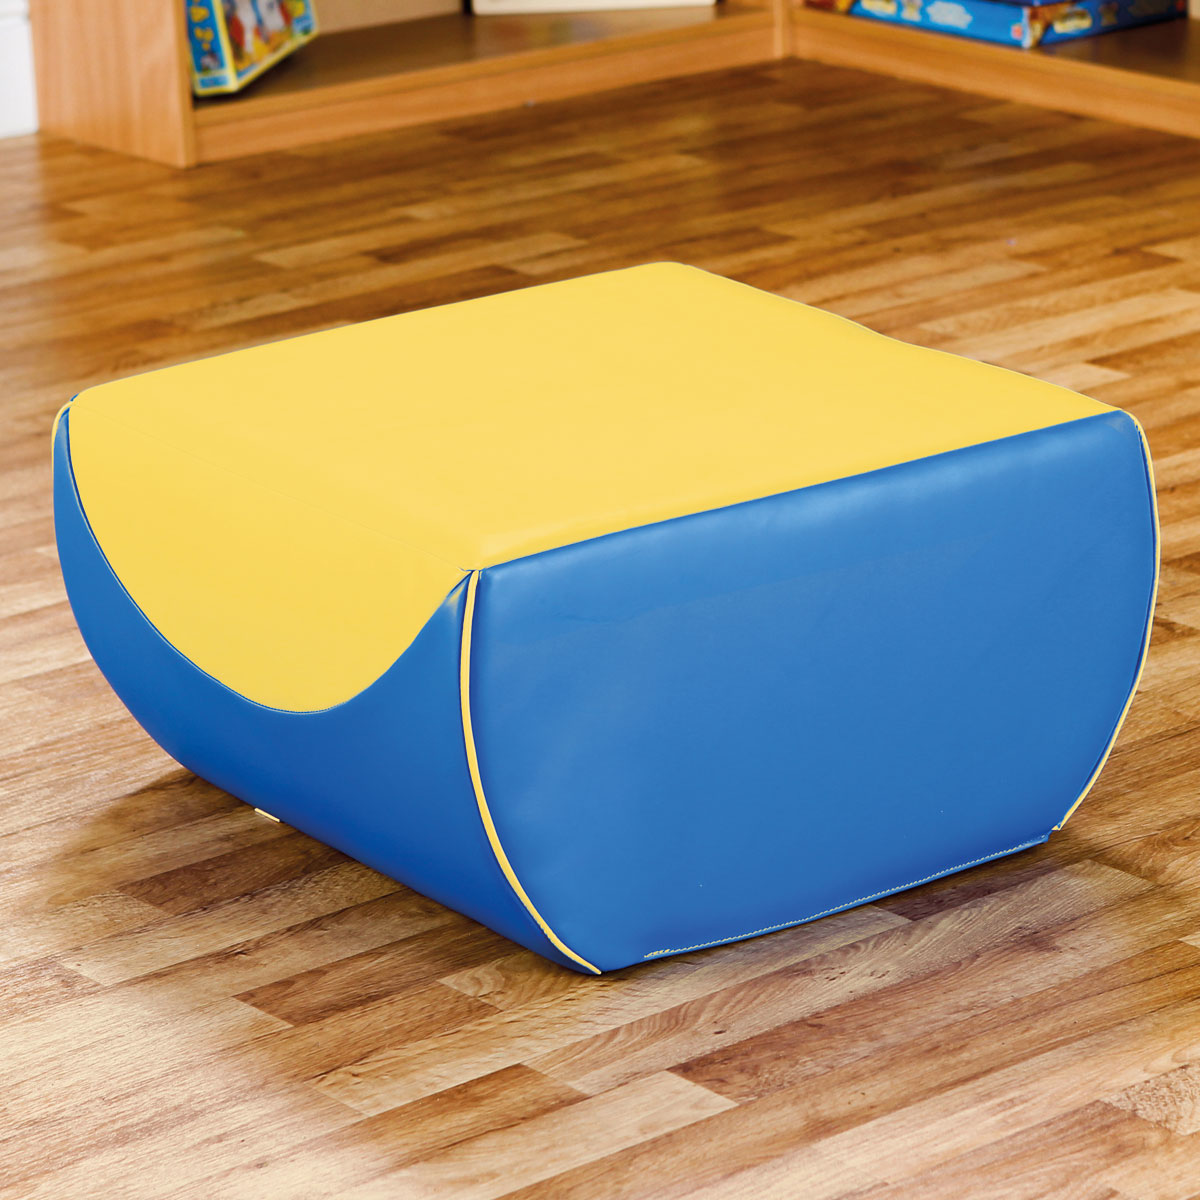 deco pouf blue yellow sp2206 by buy at primary ict for primary schools education. Black Bedroom Furniture Sets. Home Design Ideas